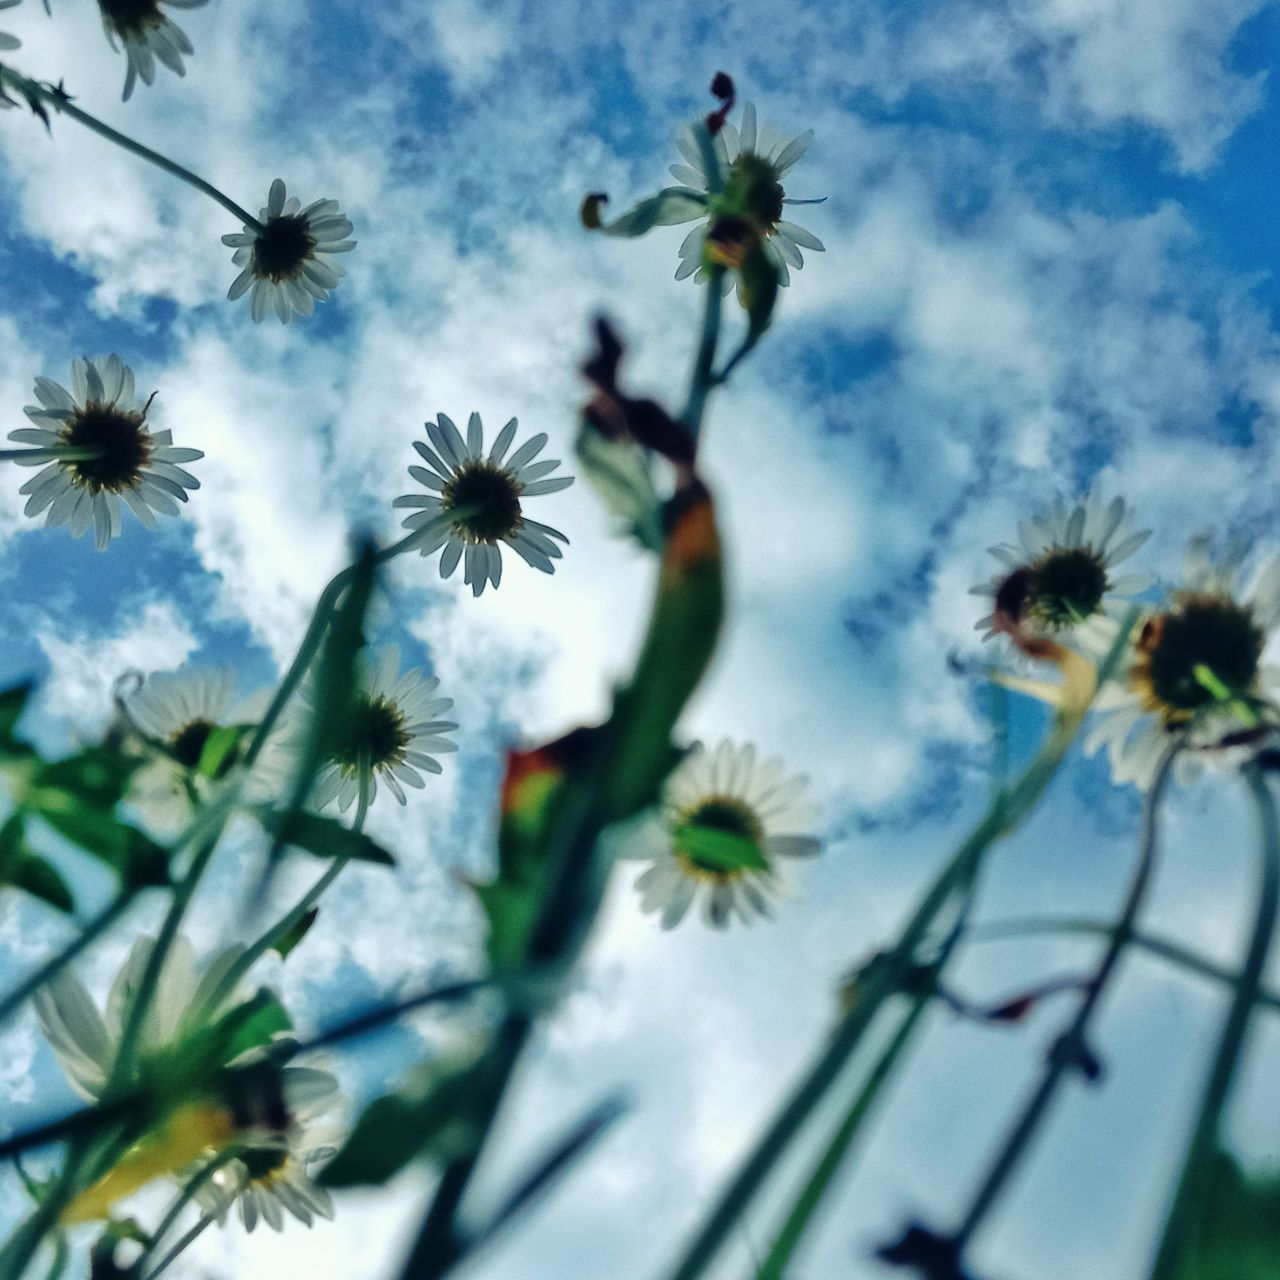 LOW ANGLE VIEW OF WHITE FLOWERING PLANT AGAINST SKY